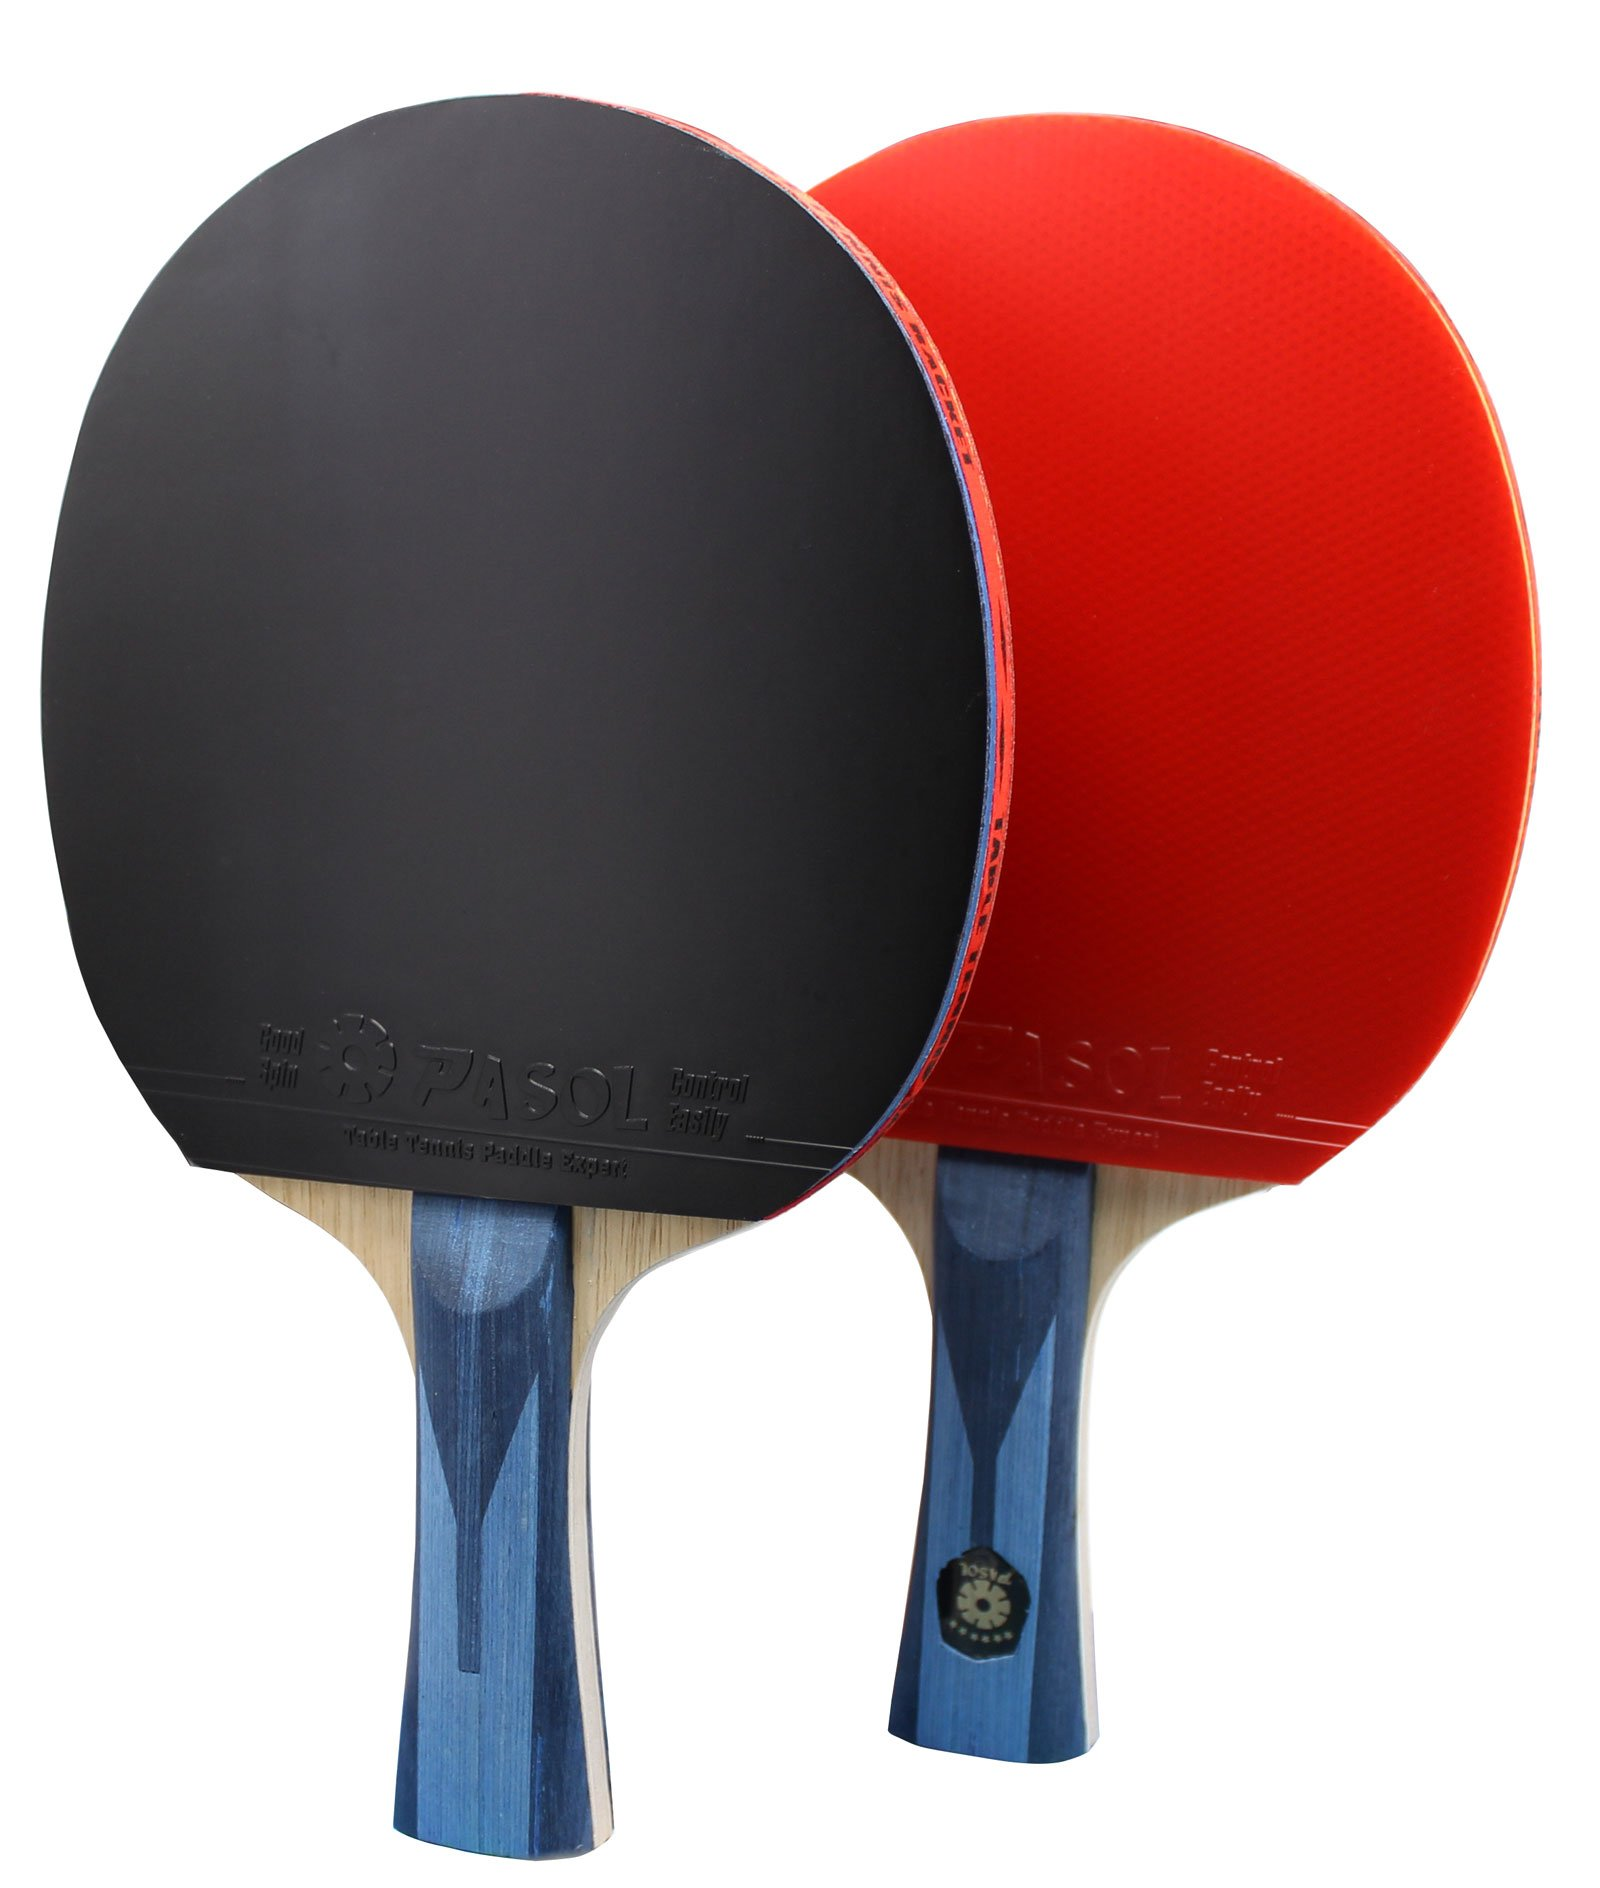 2- Player PASOL 6 Star Superior Ping Pong Paddles - Great Professional Tournament Table Tennis Racket with Carry Bag